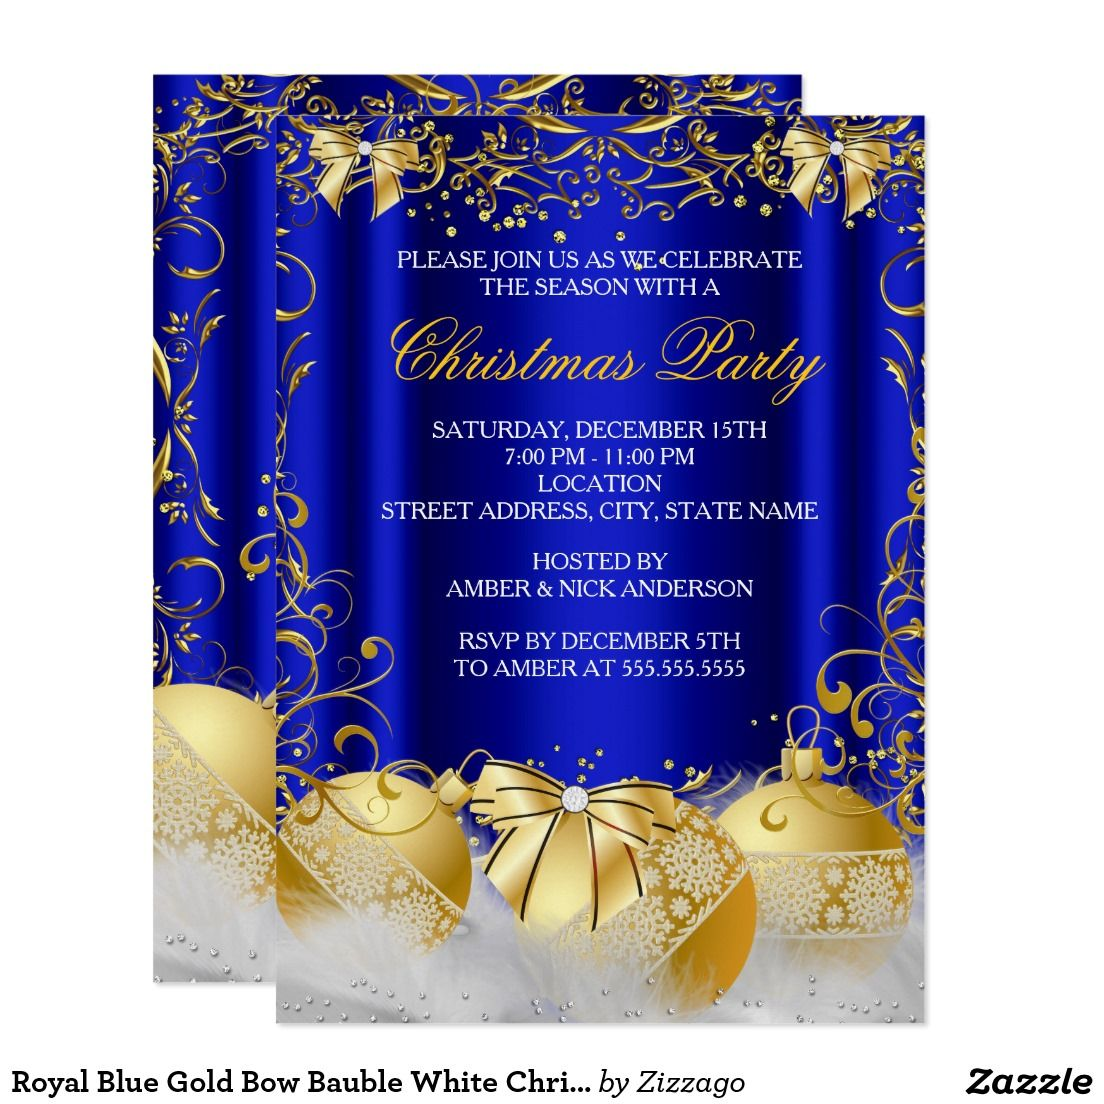 Royal Blue Gold Bow Bauble White Christmas Party Card | Christmas ...